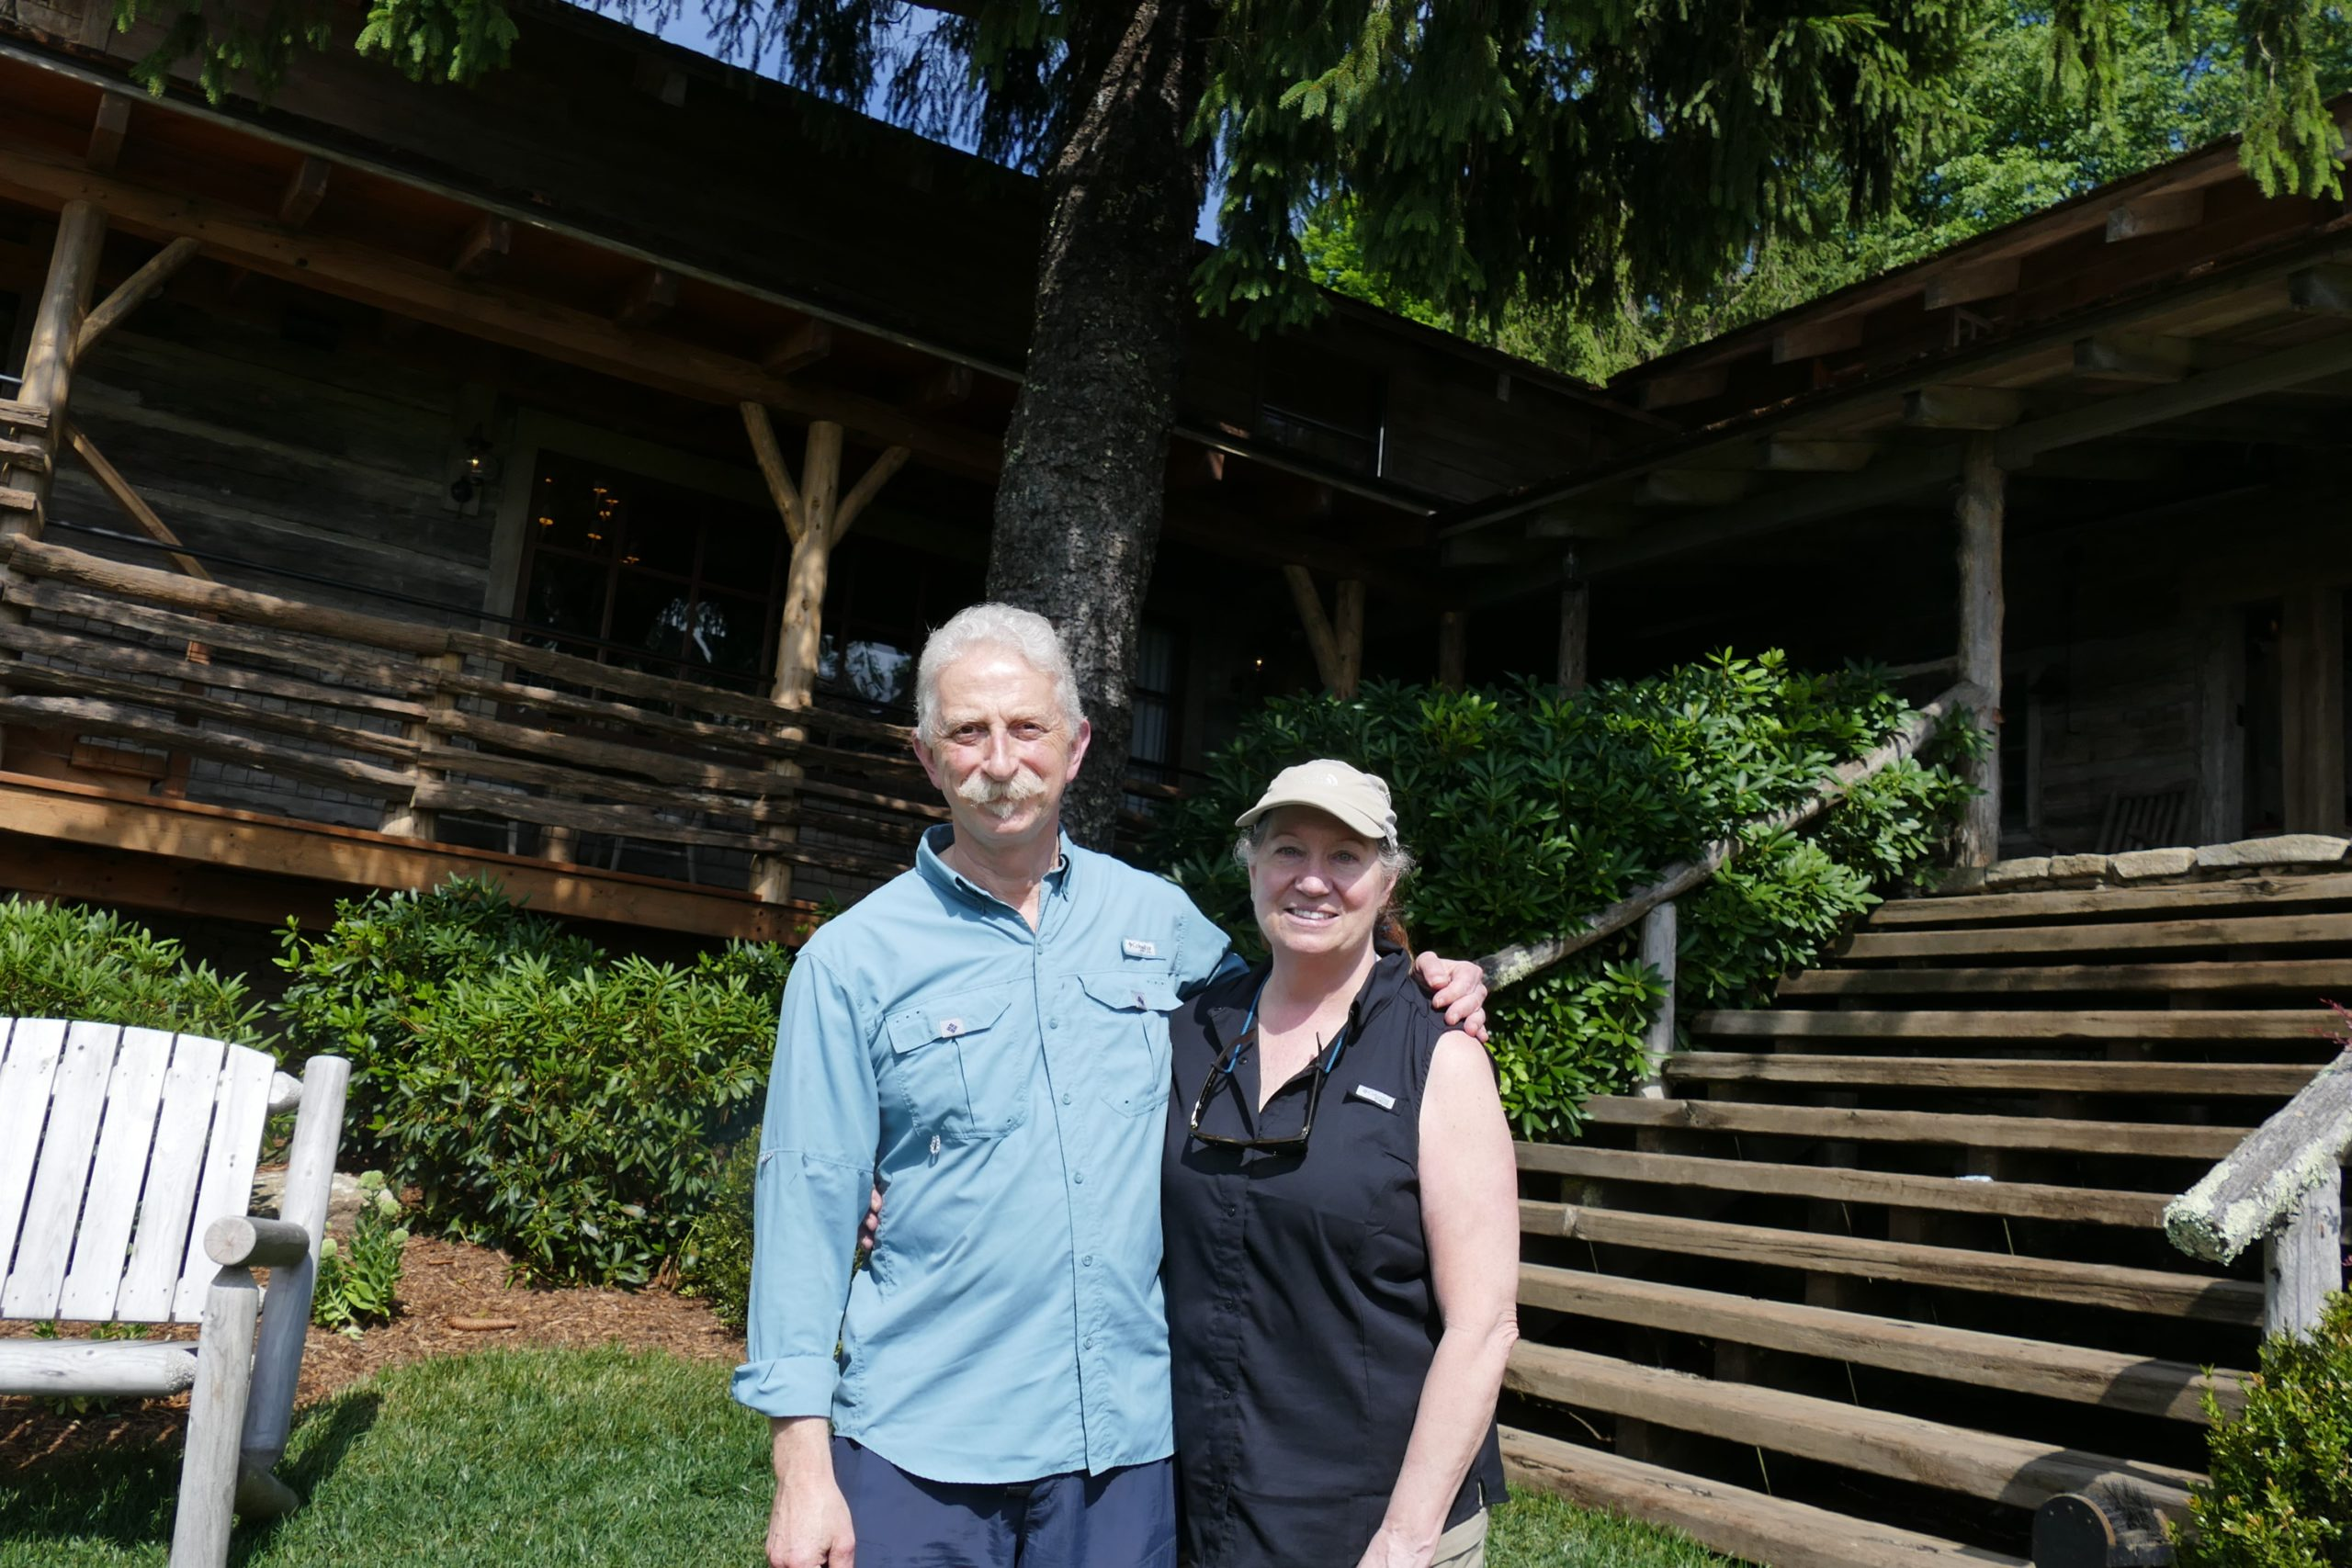 Andrea and George standing by the steps of the Swag resort